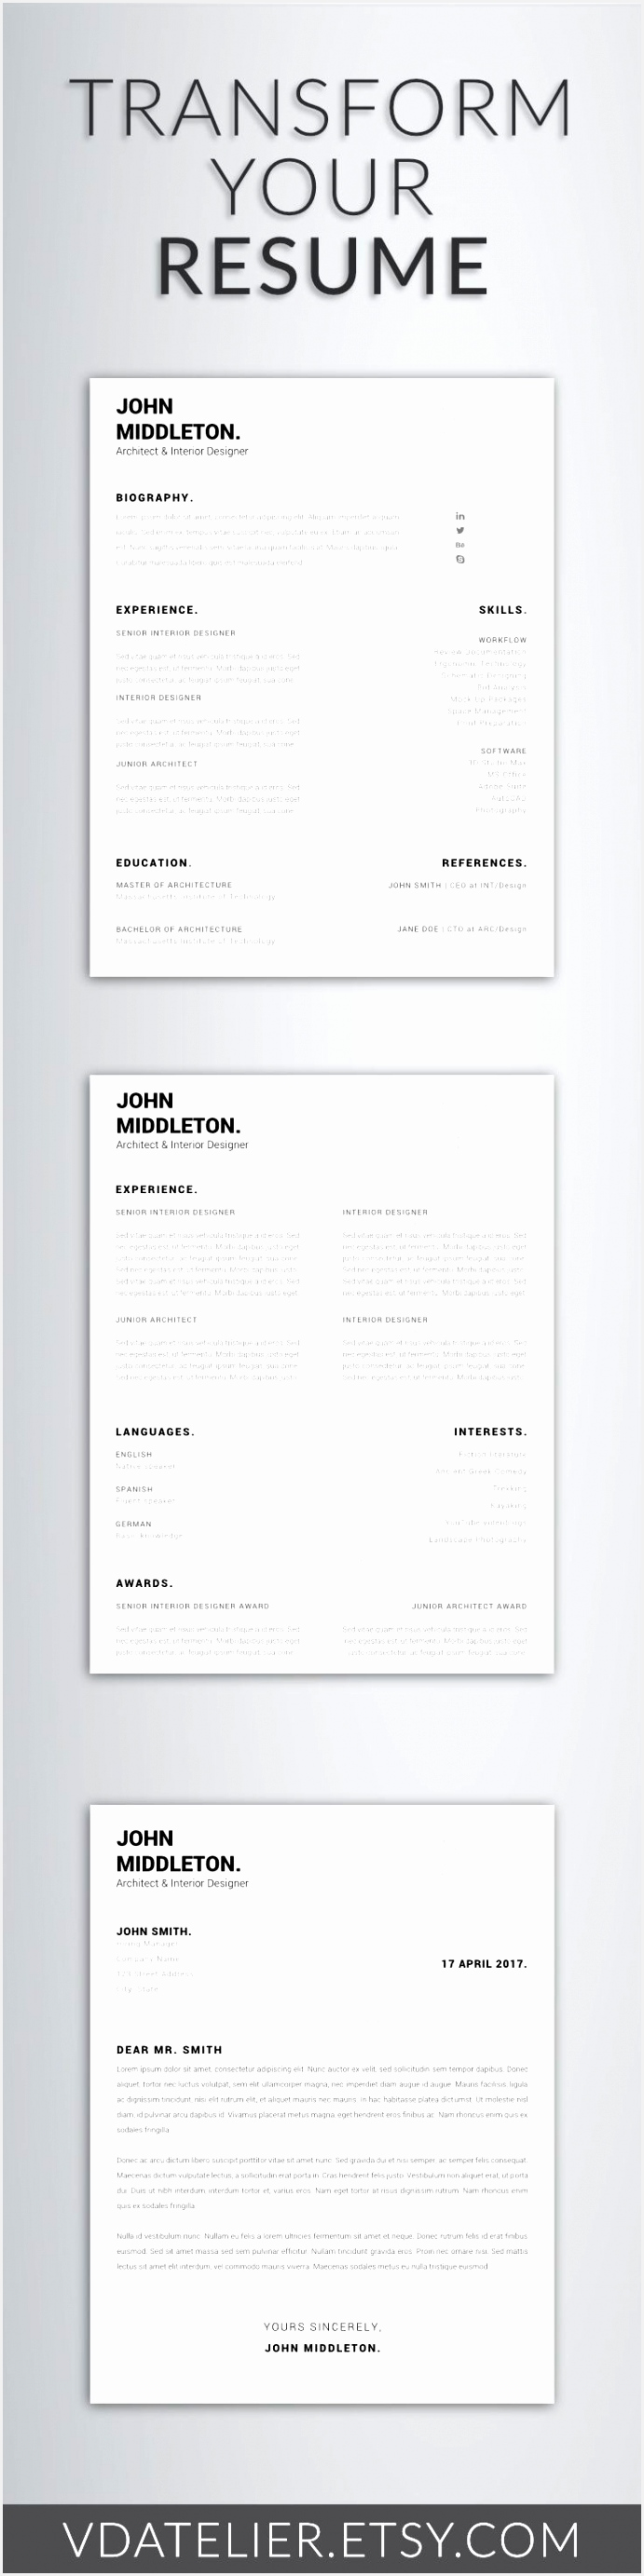 Head Teacher Resume Ucq3n Inspirational Modern Resume Template New Resume Template Cv Template Cover Letter Of Head Teacher Resume Ypkzd New Resume Template for Teachers Awesome Resume for Teaching Position